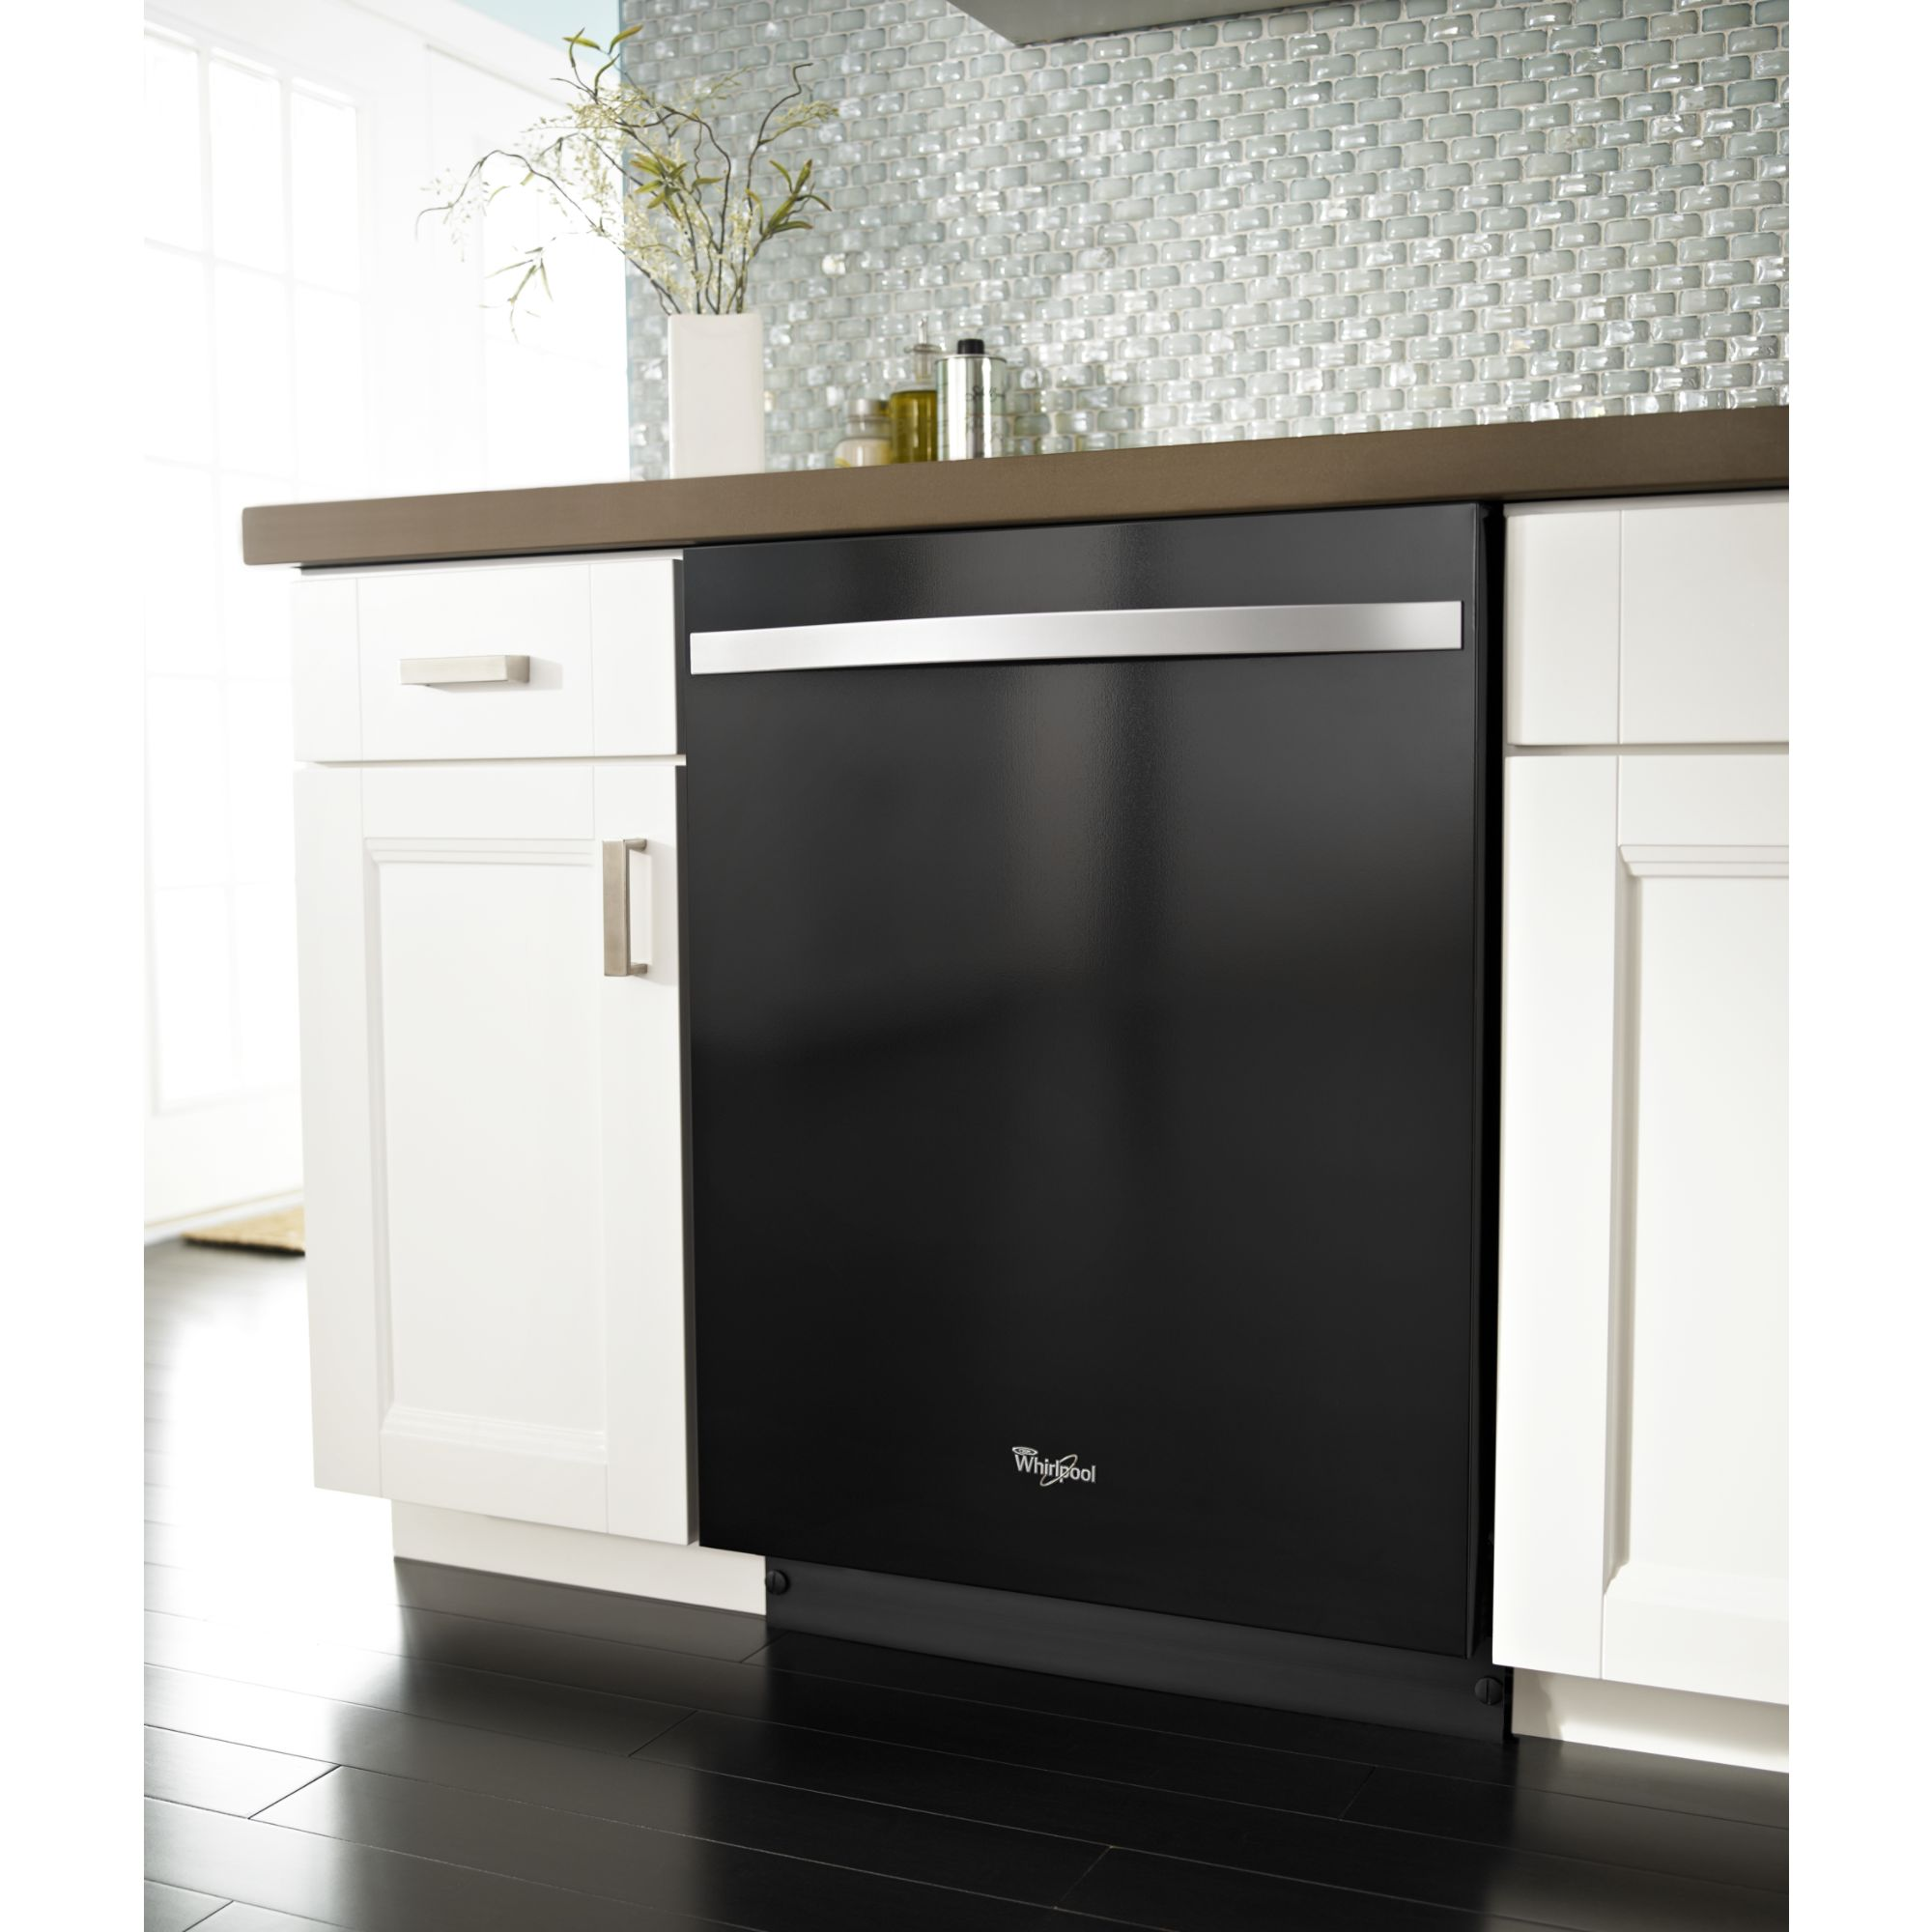 "Whirlpool 24"" Built-In Dishwasher w/ PowerScour™ Option - Black Ice"